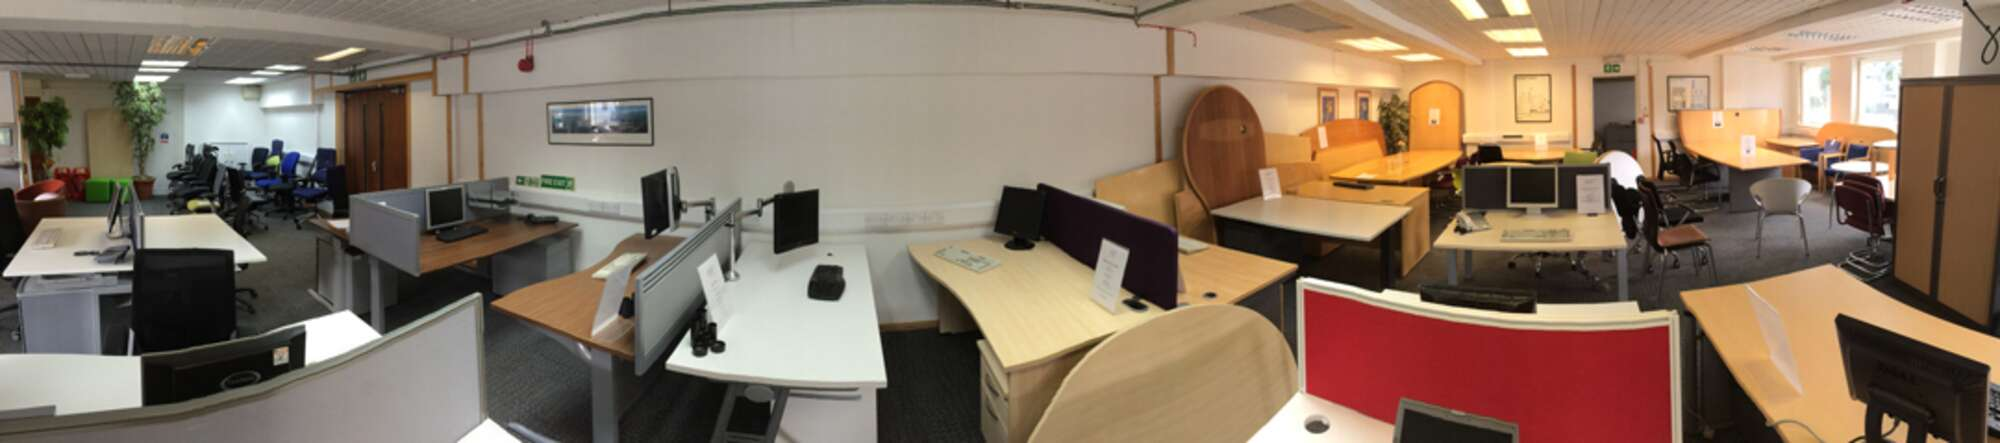 High quality office furniture available at a fraction of the cost of new